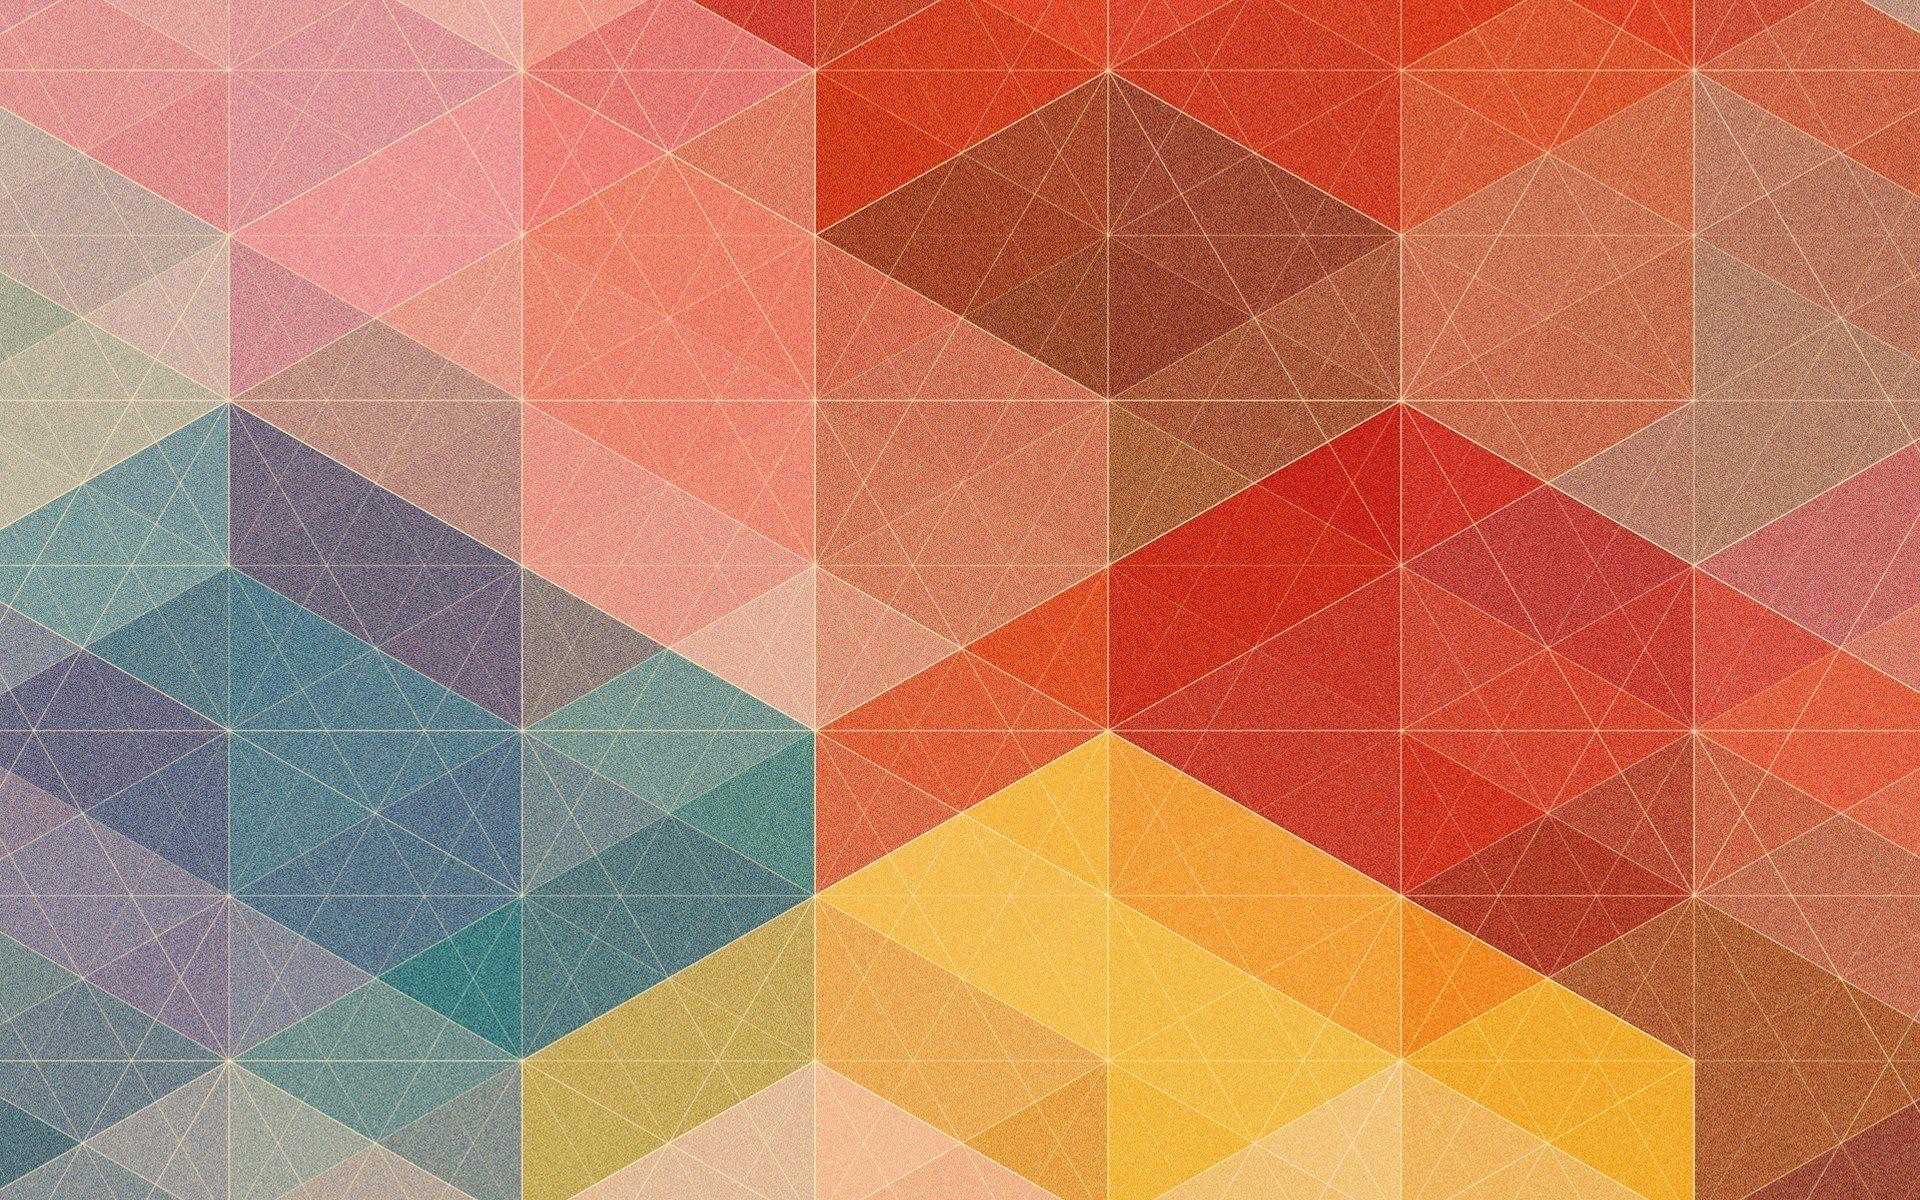 Free Colorful Geometric Wallpaper: Geometric Shapes Wallpapers